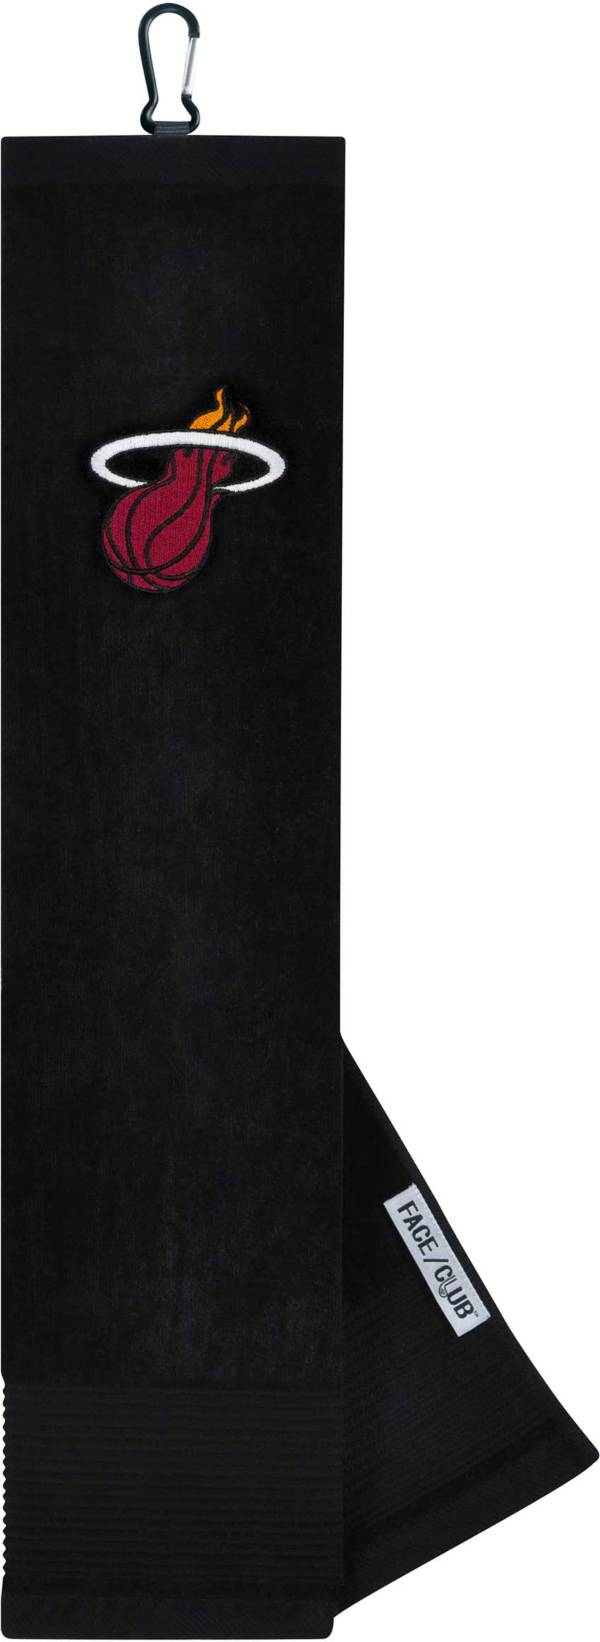 Team Effort Miami Heat Embroidered Face/Club Tri-Fold Towel product image